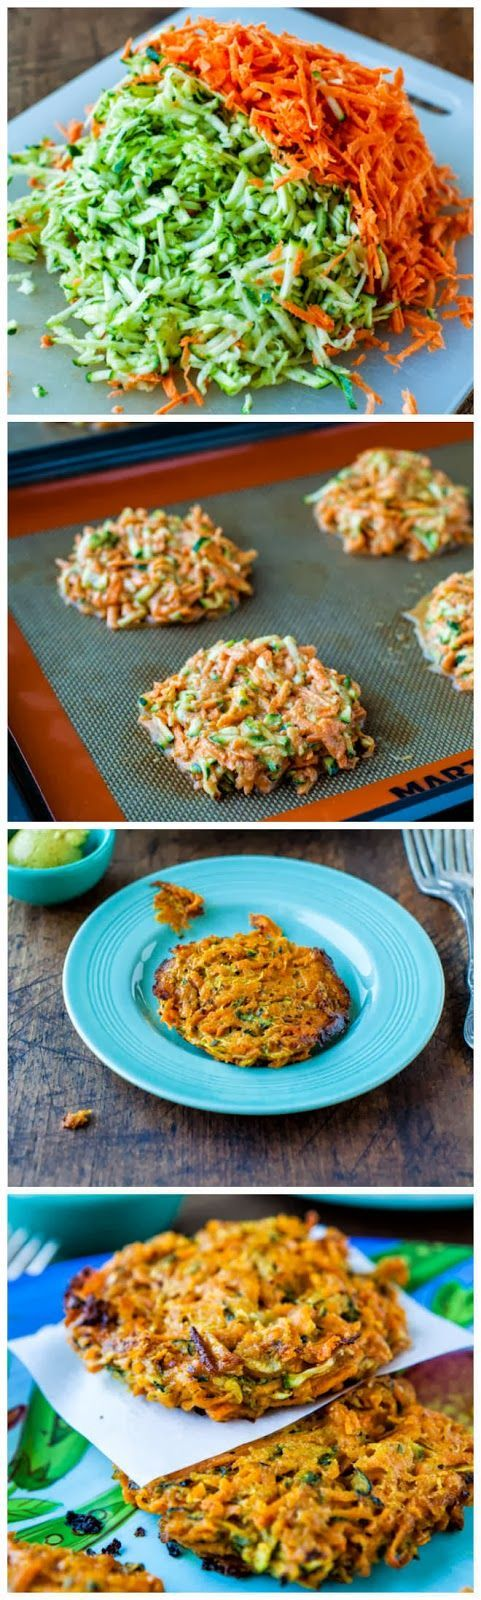 Baked Chipotle Sweet Potato and Zucchini Fritters (vegan, gluten-free) & Homemade Spicy Honey Mustard - You don't have to  fry these healthy fritters in gobs of oil. They're baked, satisfying & a great way to work in extra veggies!